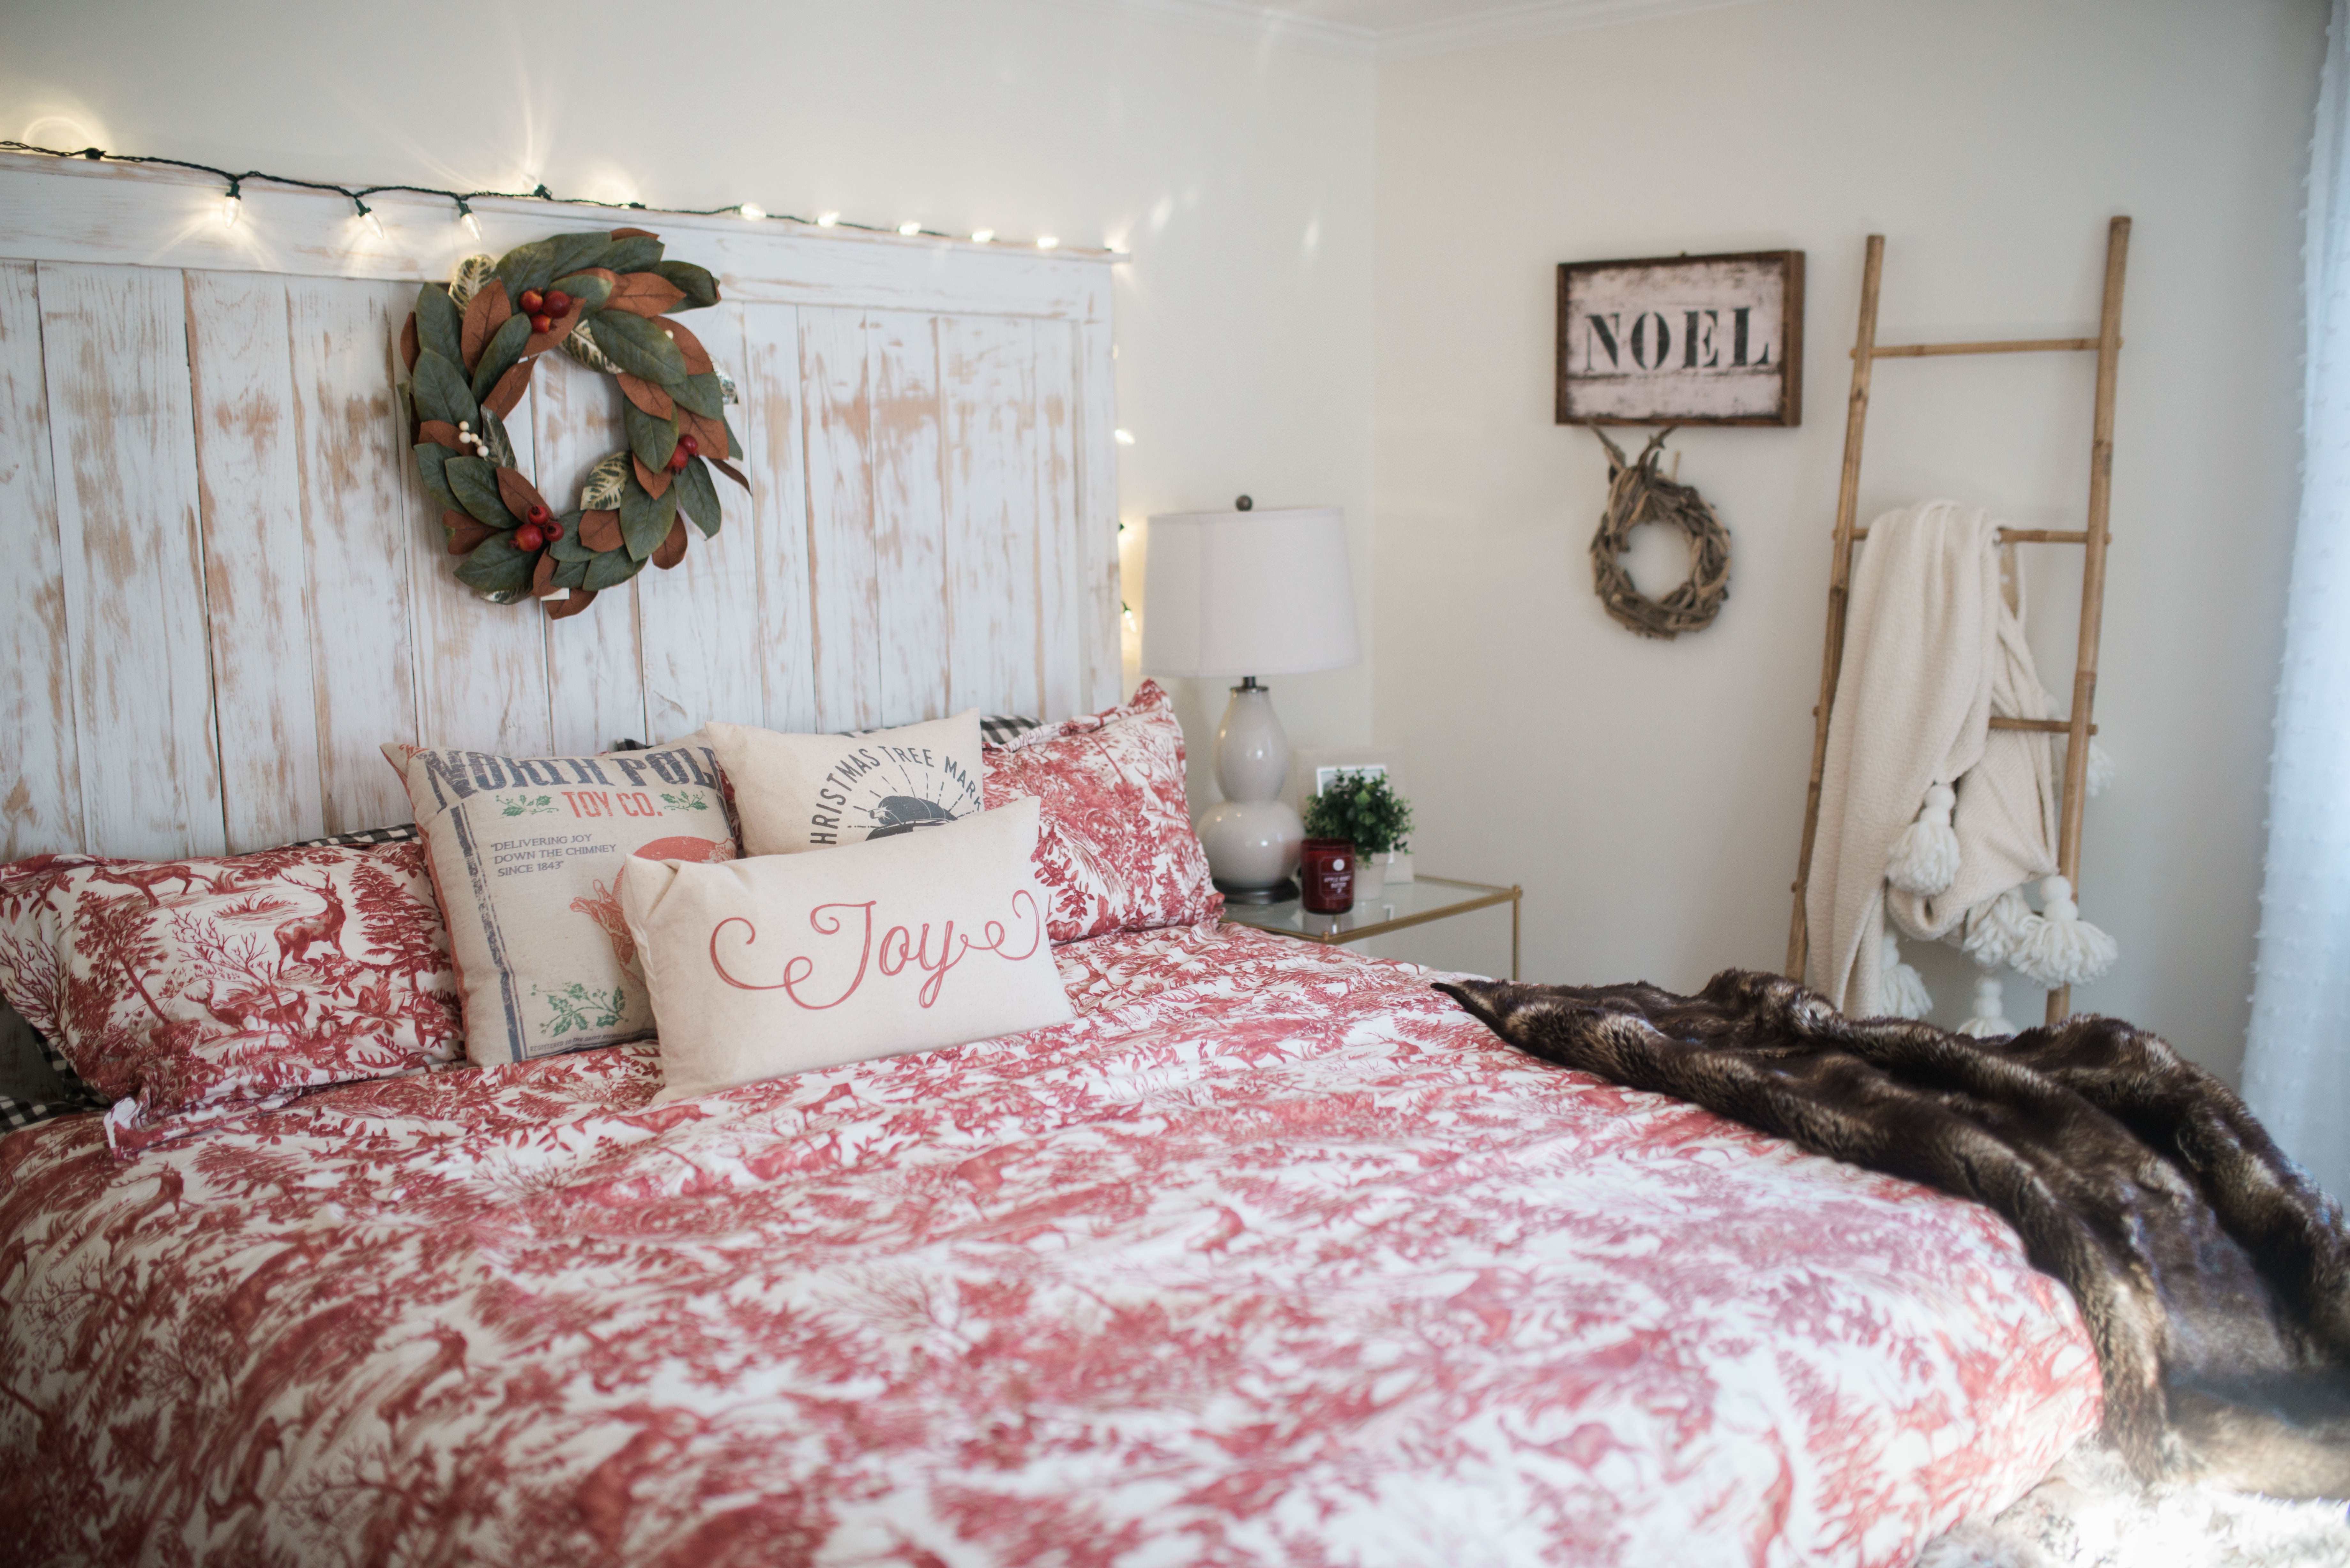 Wall Decor Ideas for Bedroom Fresh Our Bedroom Holiday Decor Bedroom Wall Decorations